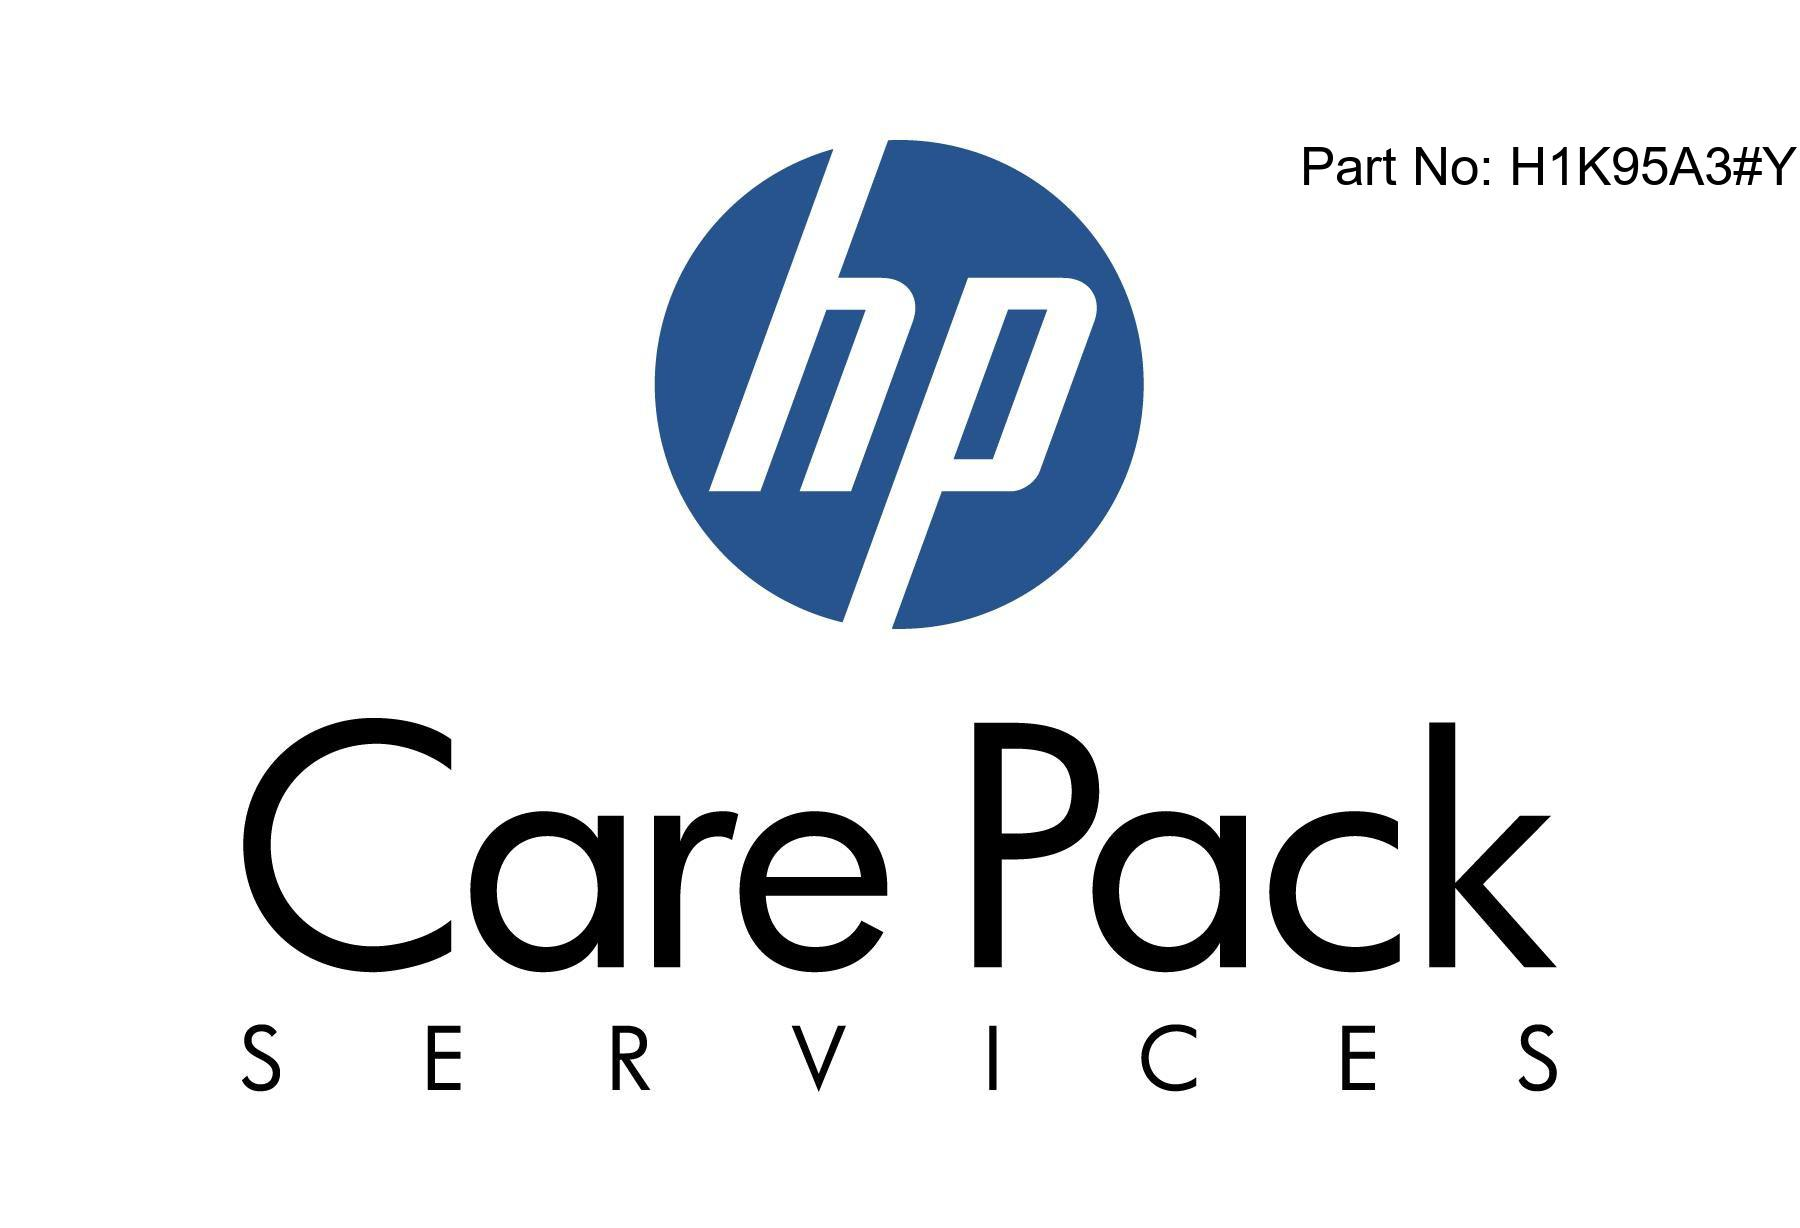 Proactive Care Call-To-Repair Service with Defective Media Retention - Technical support - for HPE XP7 Continuous Access to Three Data Center High Availability - 1 TB capacity - 0-100 TB - phone consulting - 3 years - 24x7 - response time: 2 h